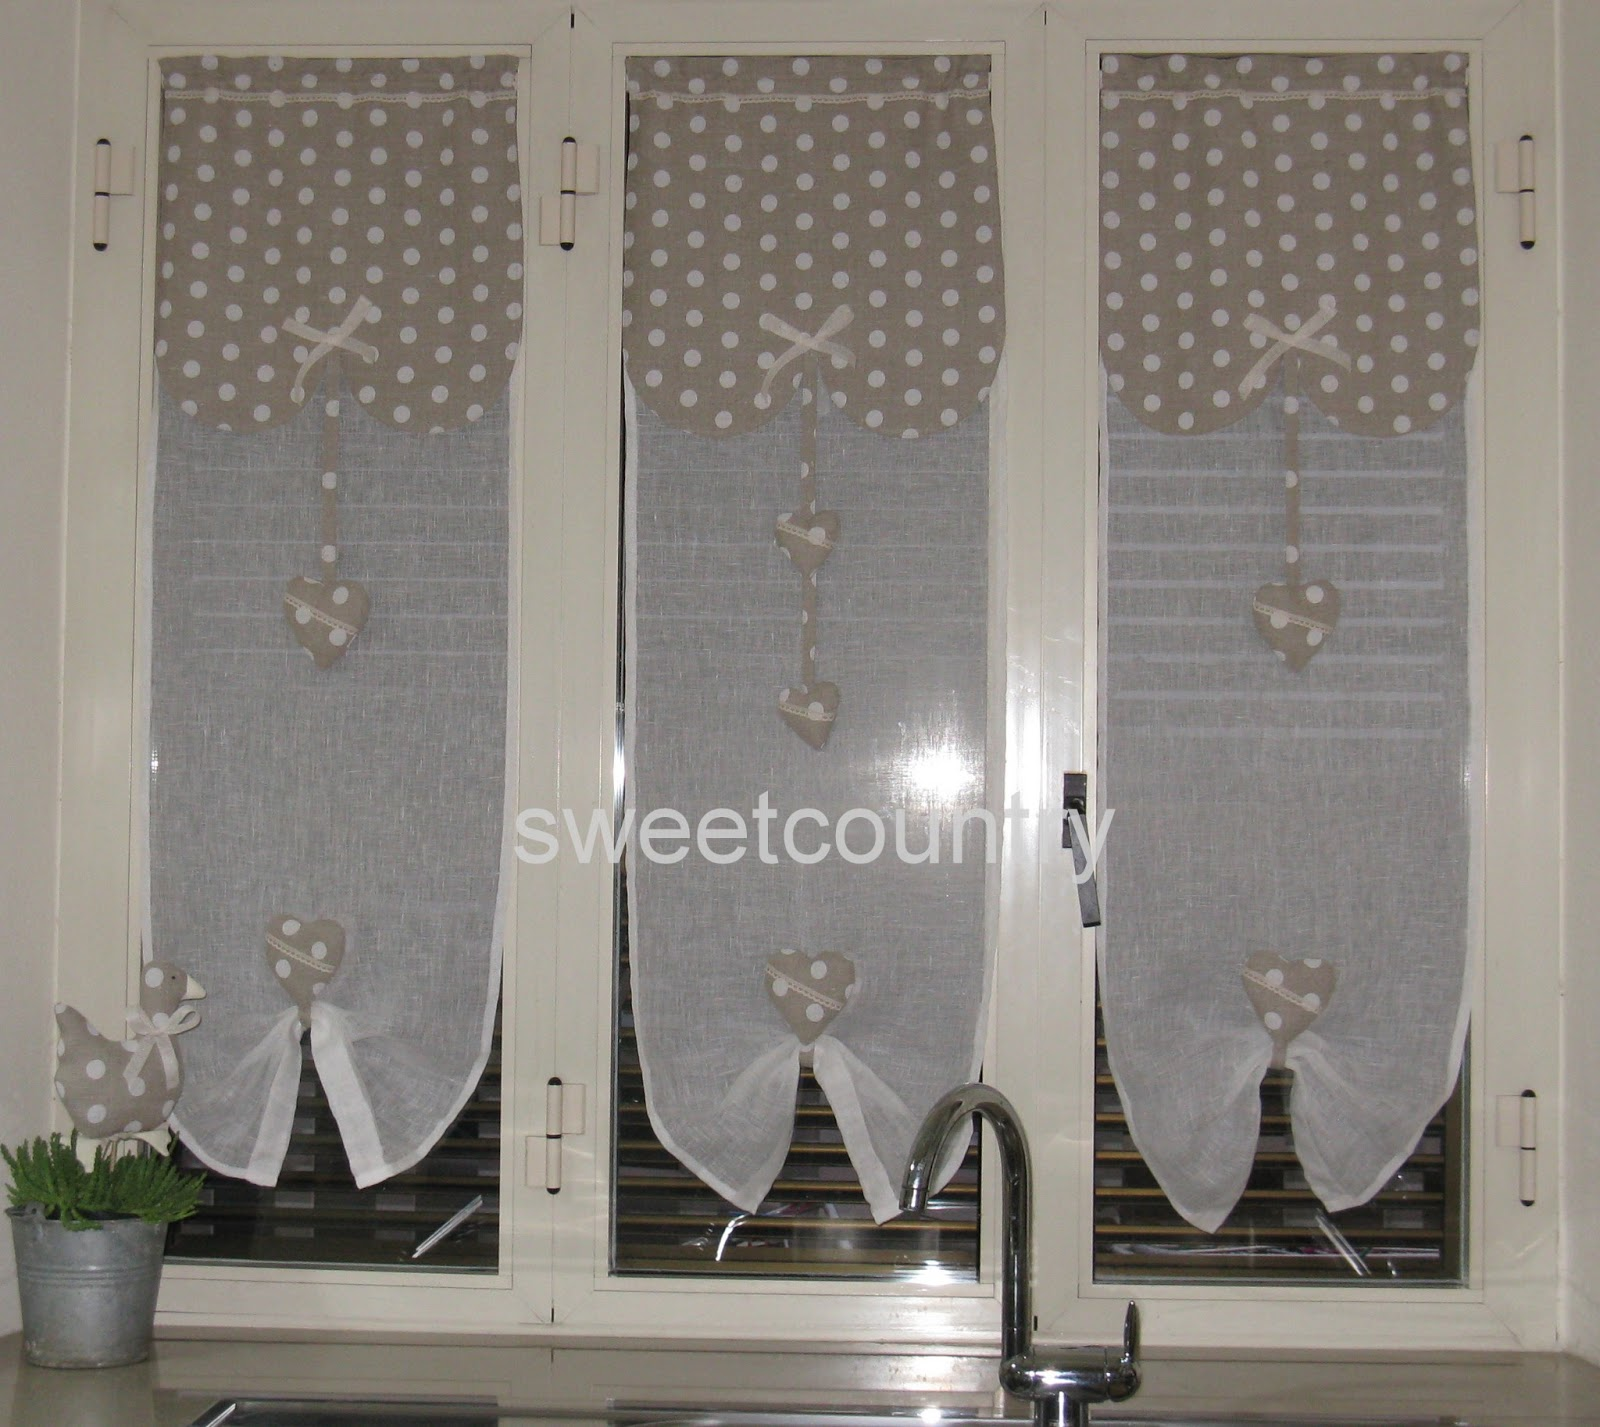 Sweetcountry tende country - Tende per cucina moderne ...